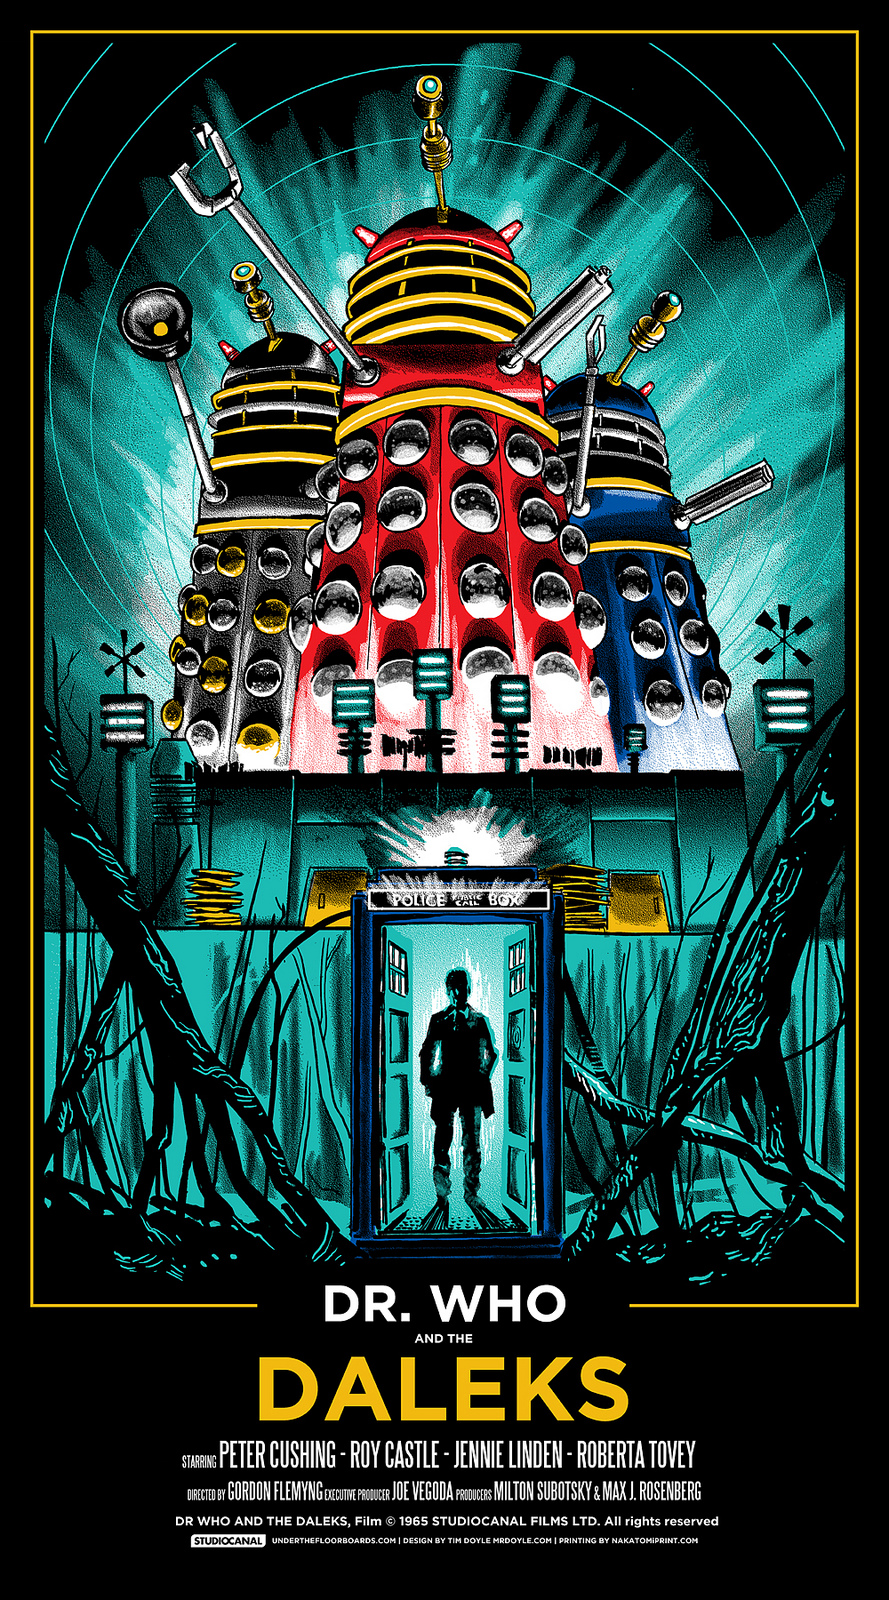 Corey Feldman And Michael Jackson Wikipedia >> Poster: Dr. Who and The Daleks (1965) Starring Peter Cushing